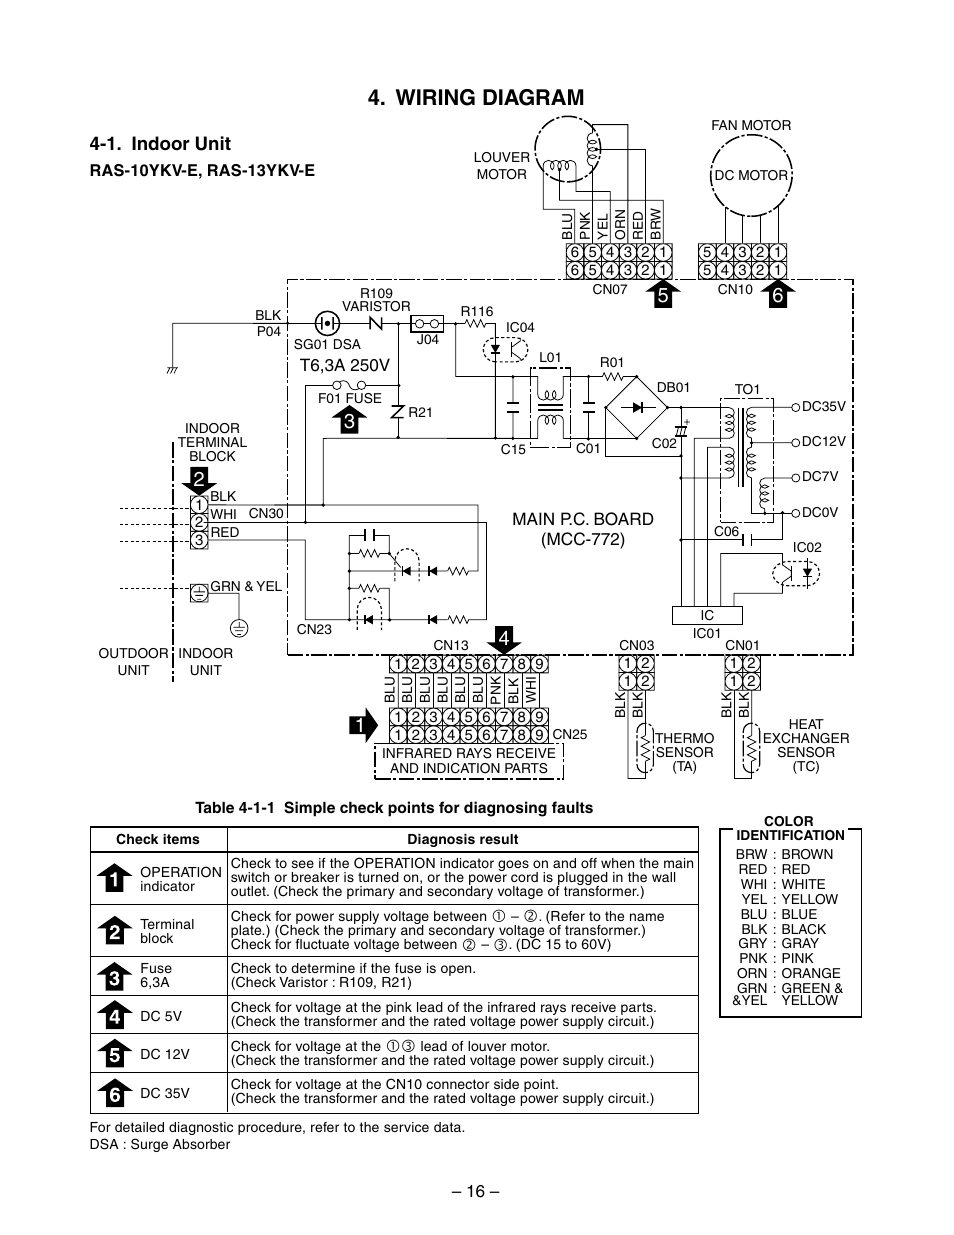 wiring diagram 1 indoor unit toshiba ras 10ykv e user manual rh manualsdir com inverter toshiba wiring diagram toshiba no frost refrigerator wiring diagram